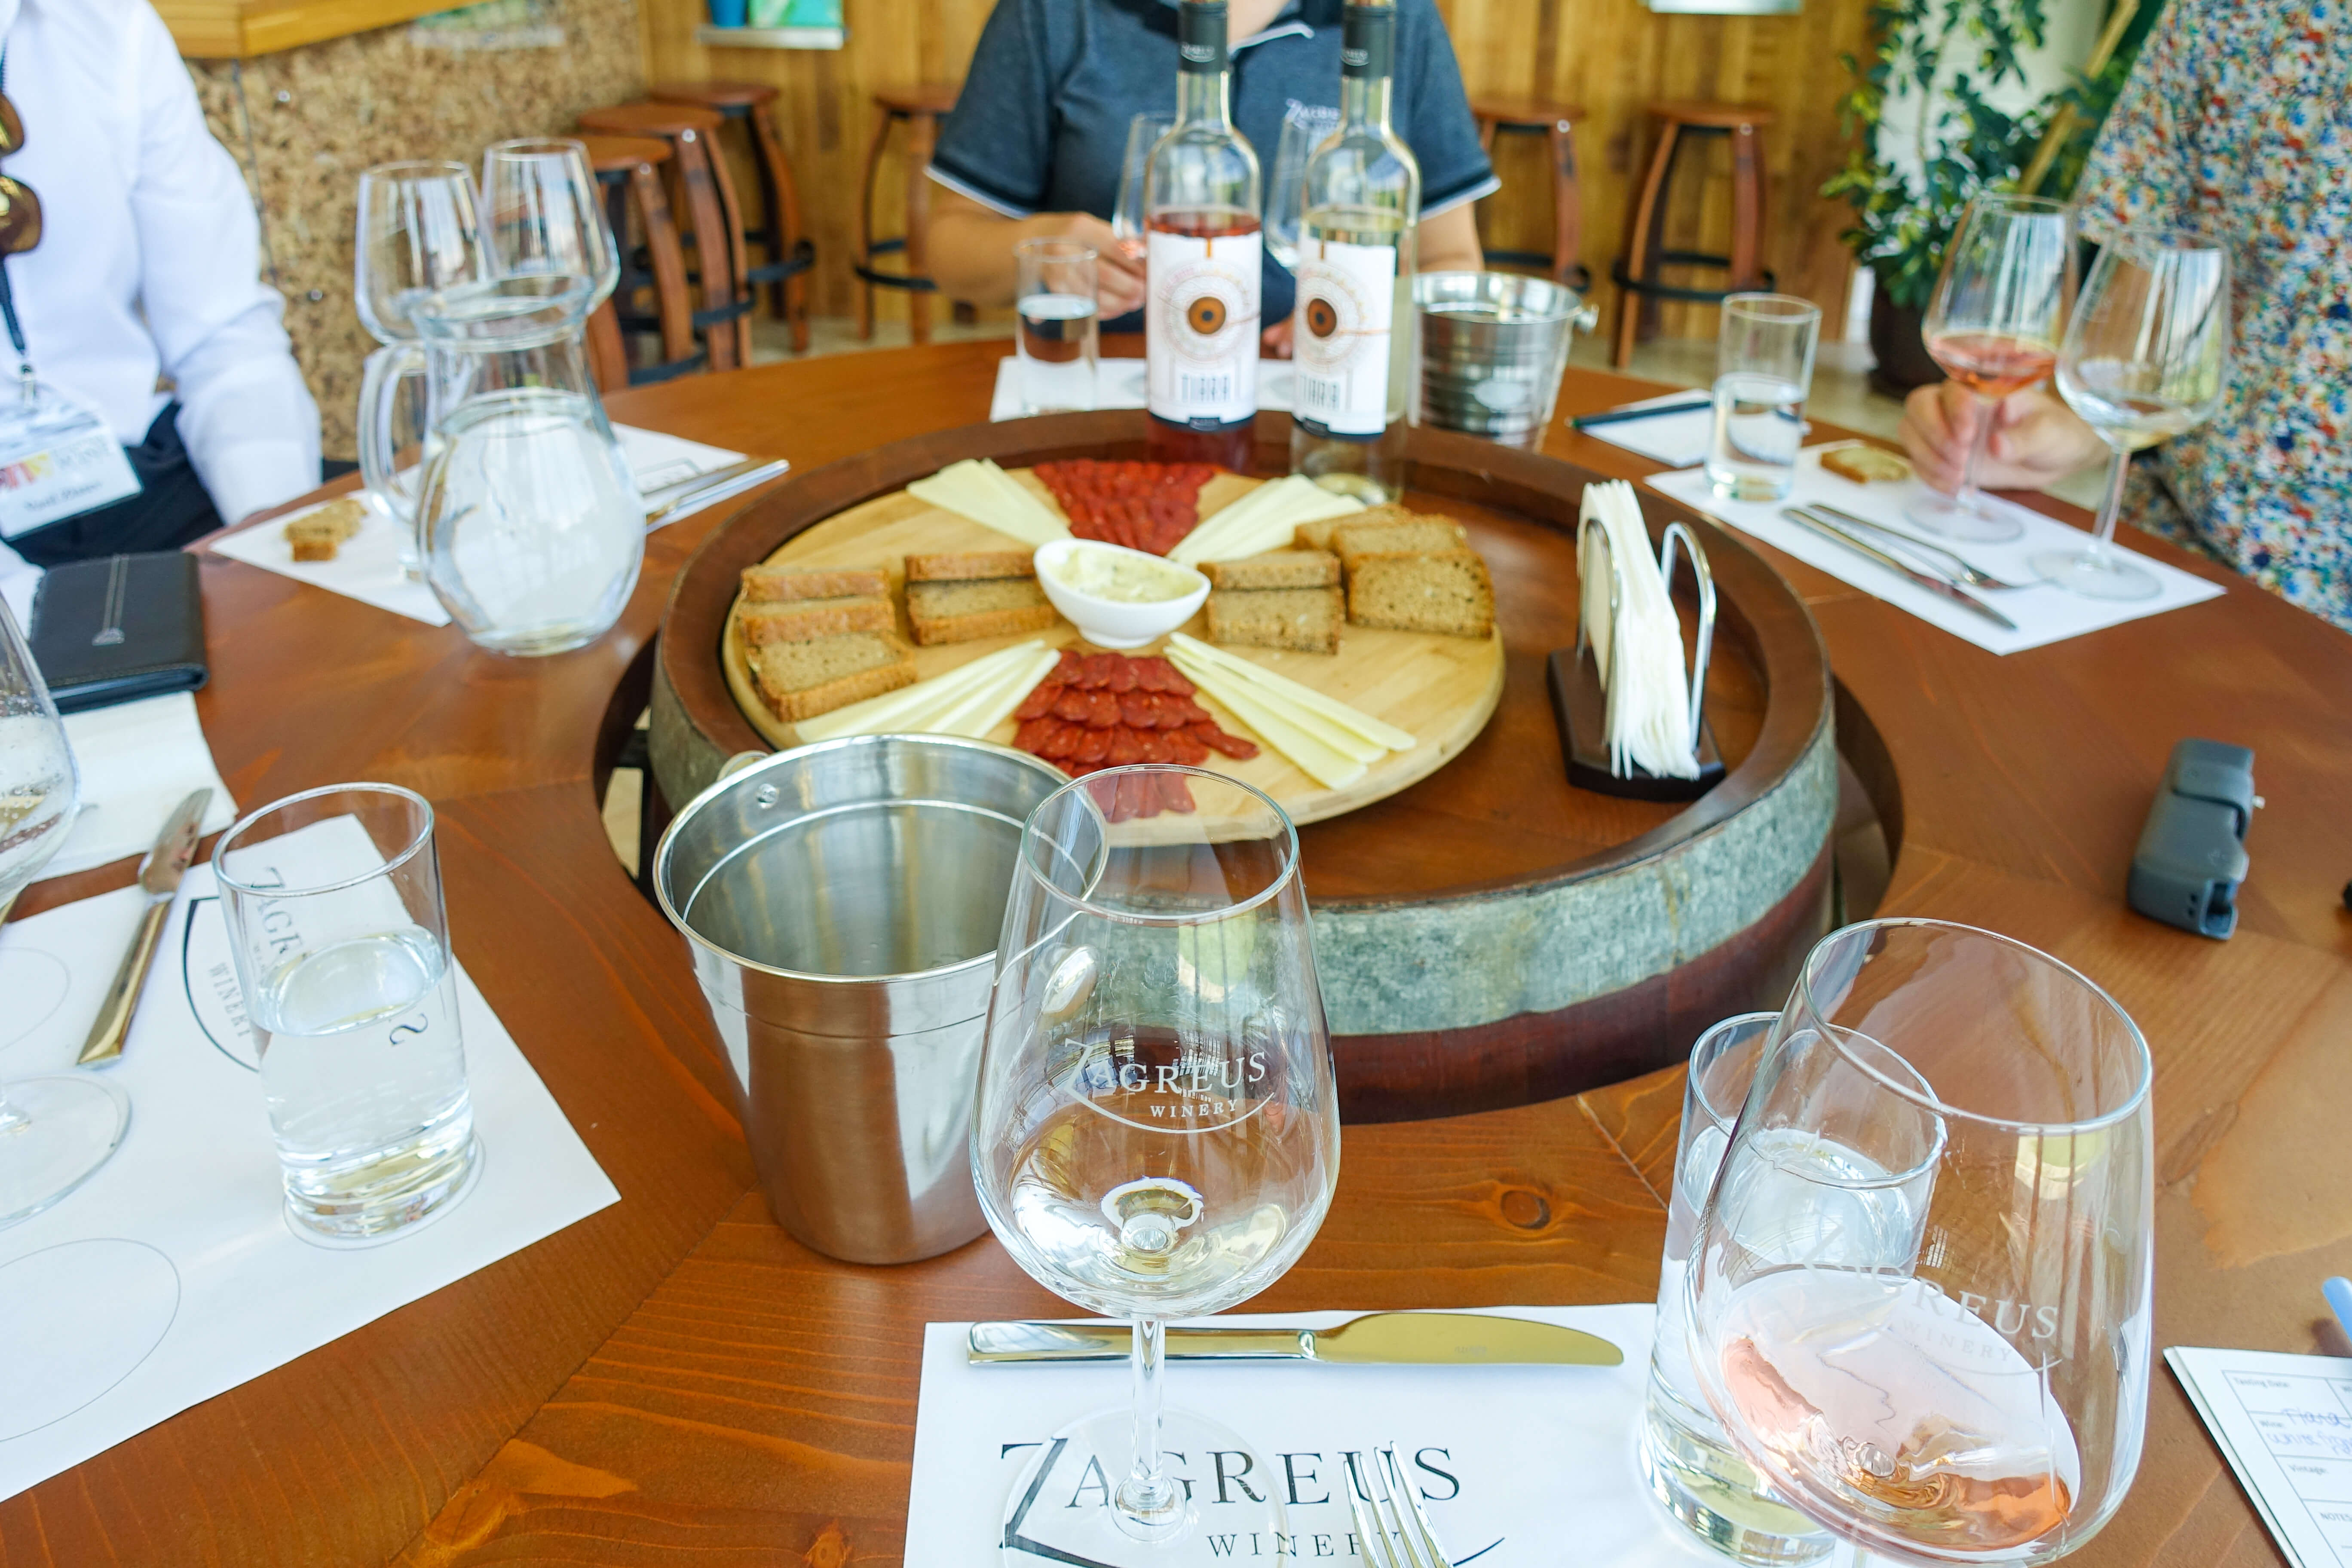 Tasting white and rosé at Zagreus Winery